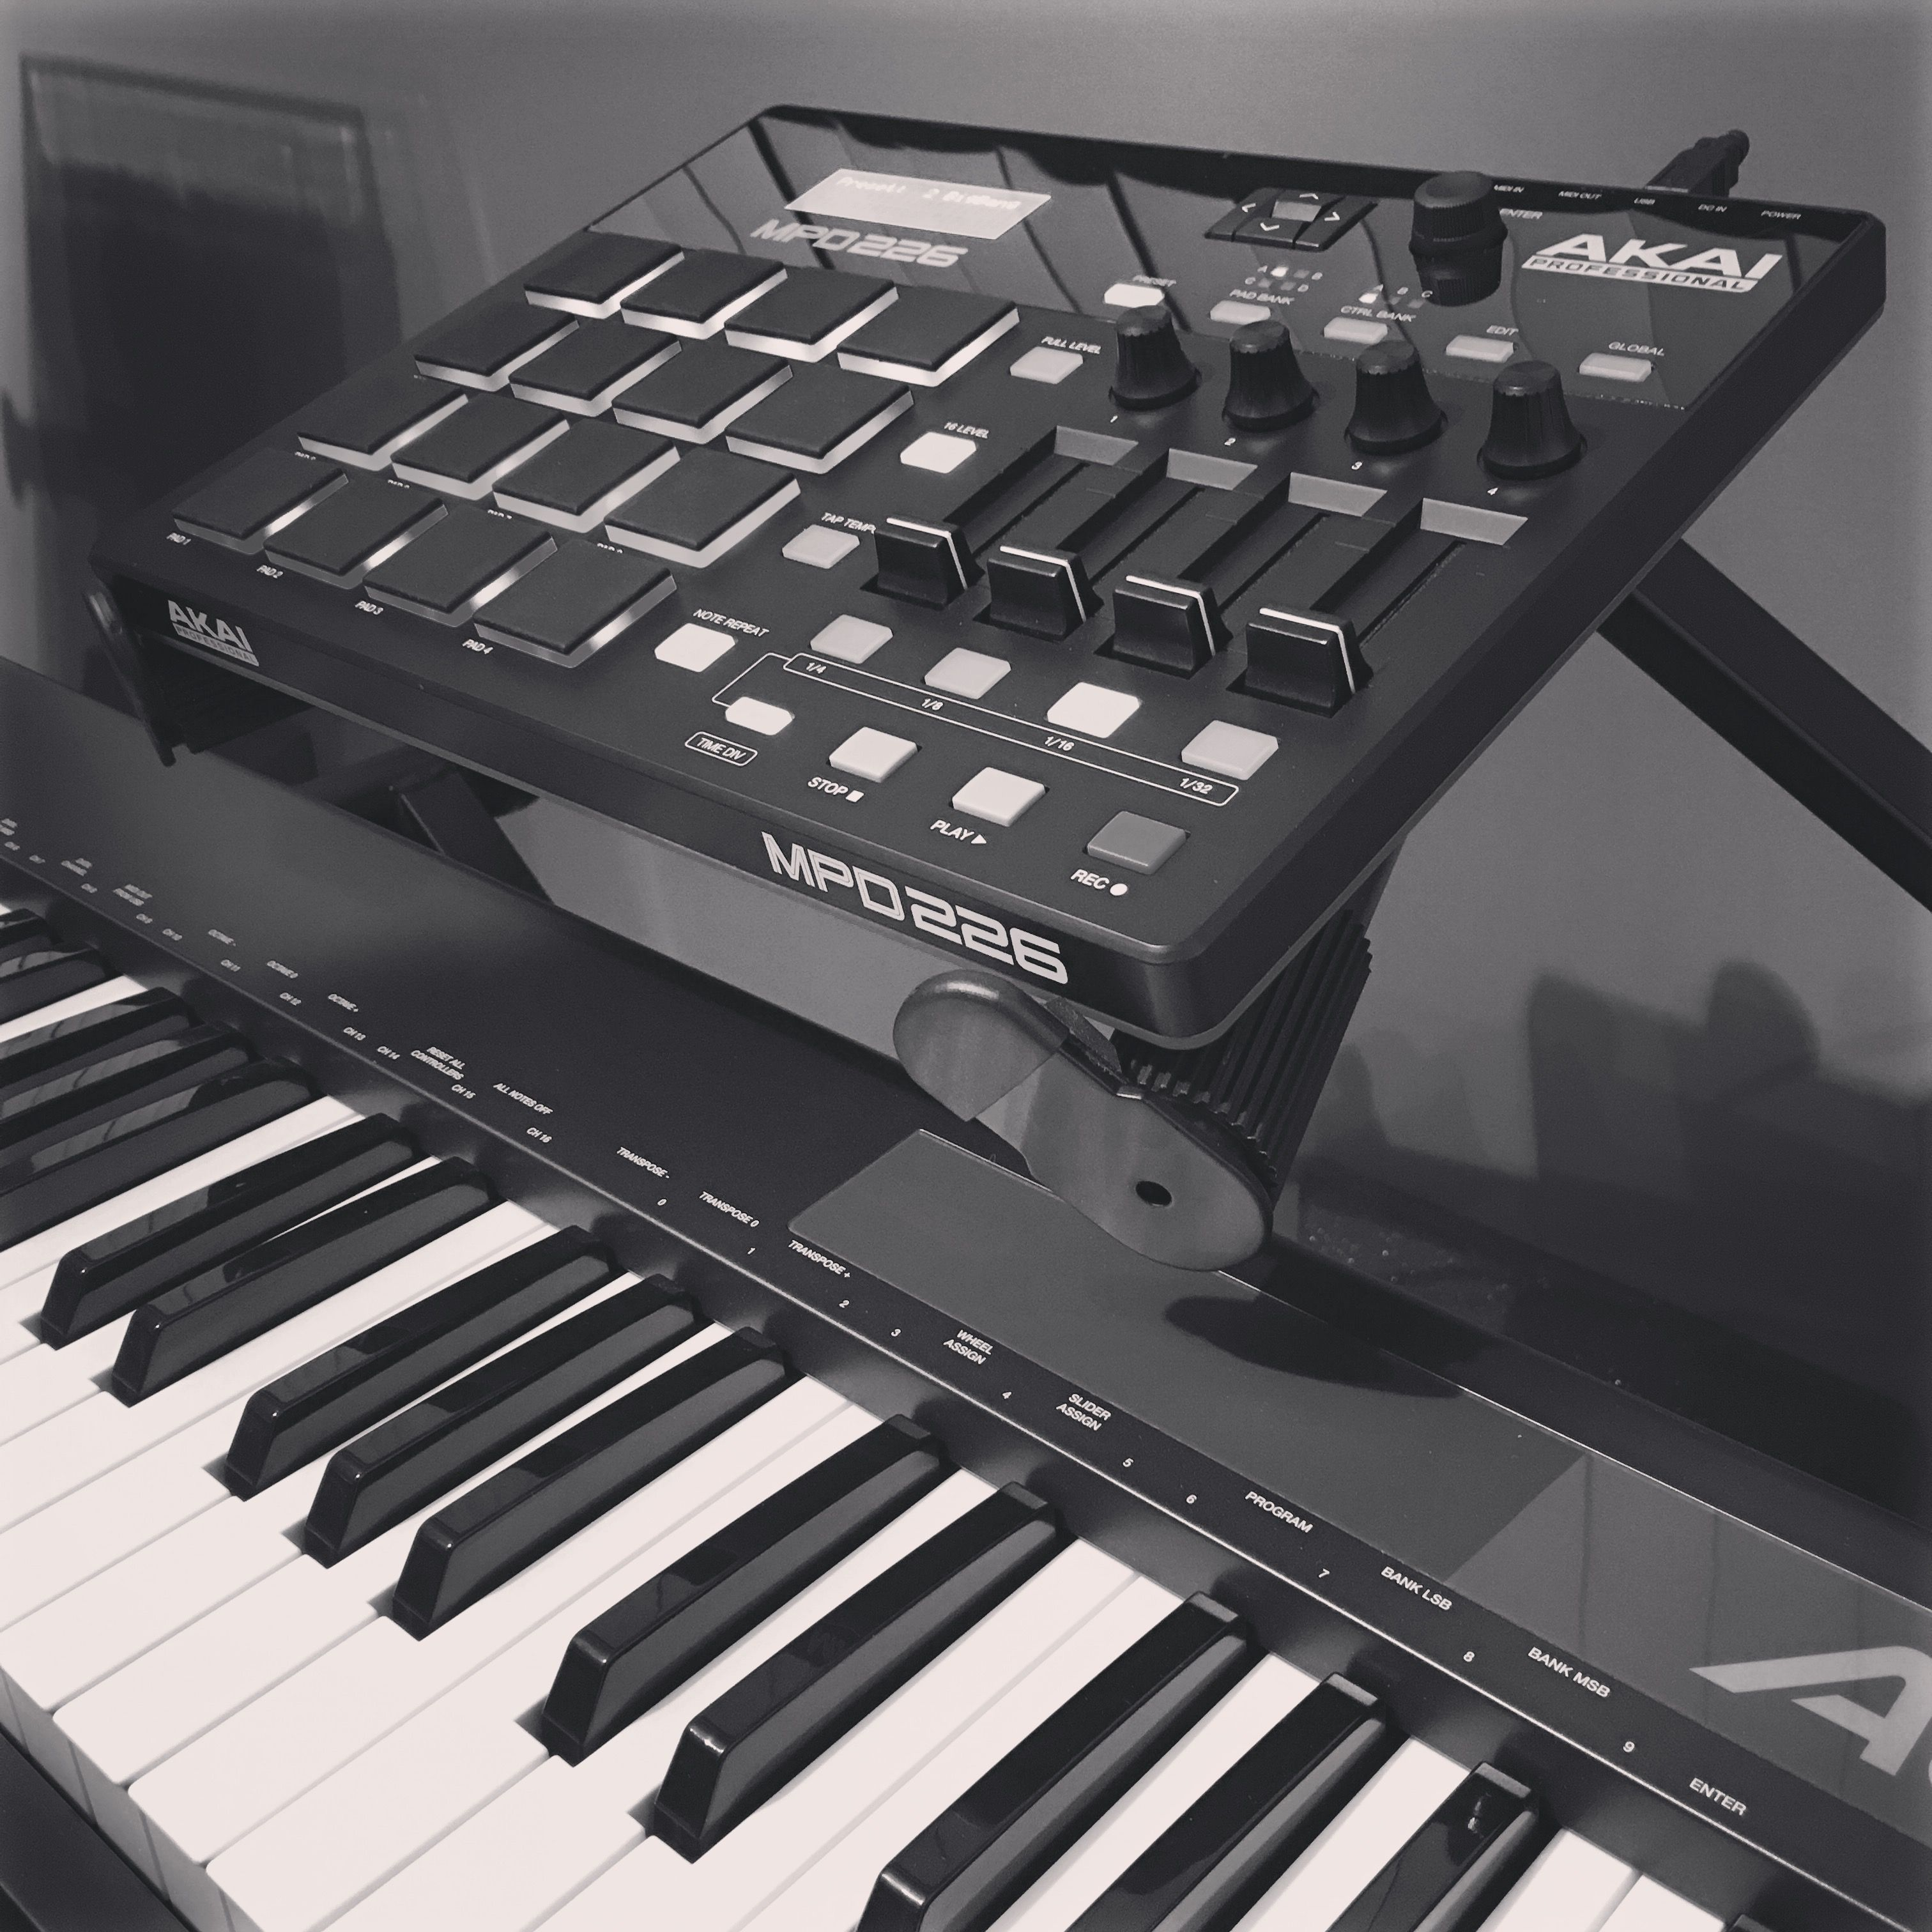 best midi controllers out there akai pro adamdahl universe milkyway earth northamerica. Black Bedroom Furniture Sets. Home Design Ideas